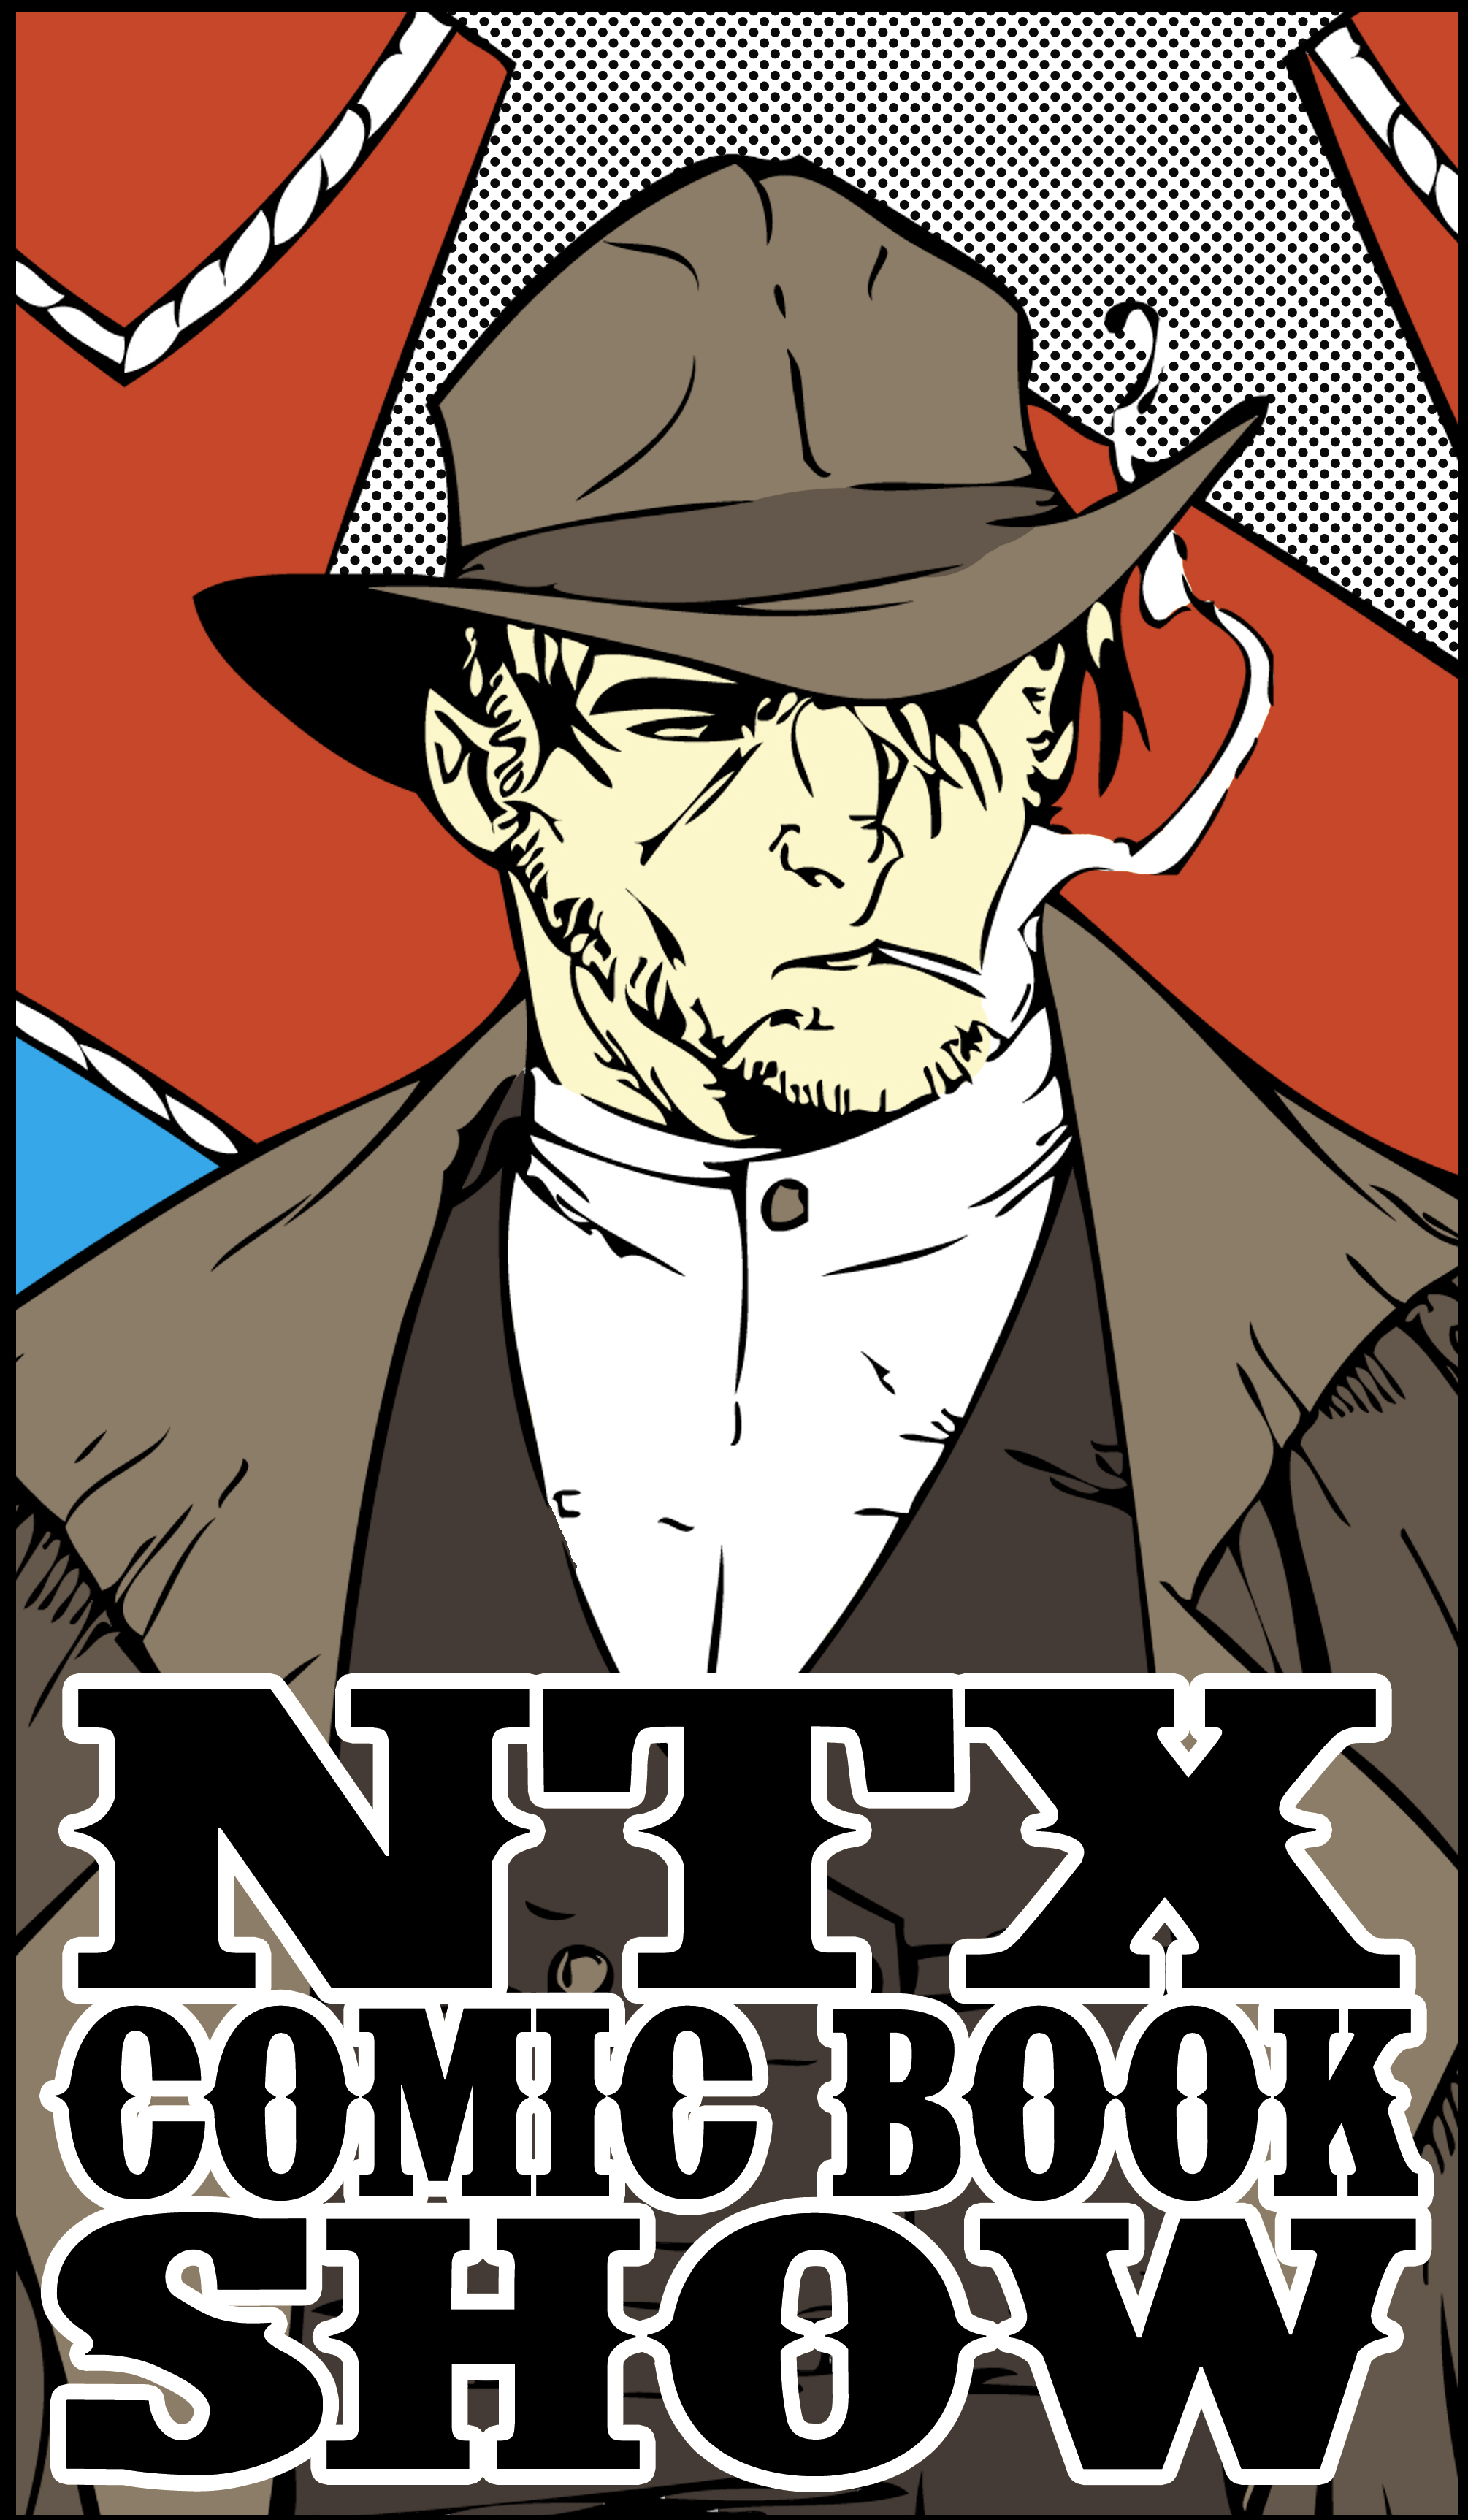 North Texas Comic Book Show January 2017 in Dallas